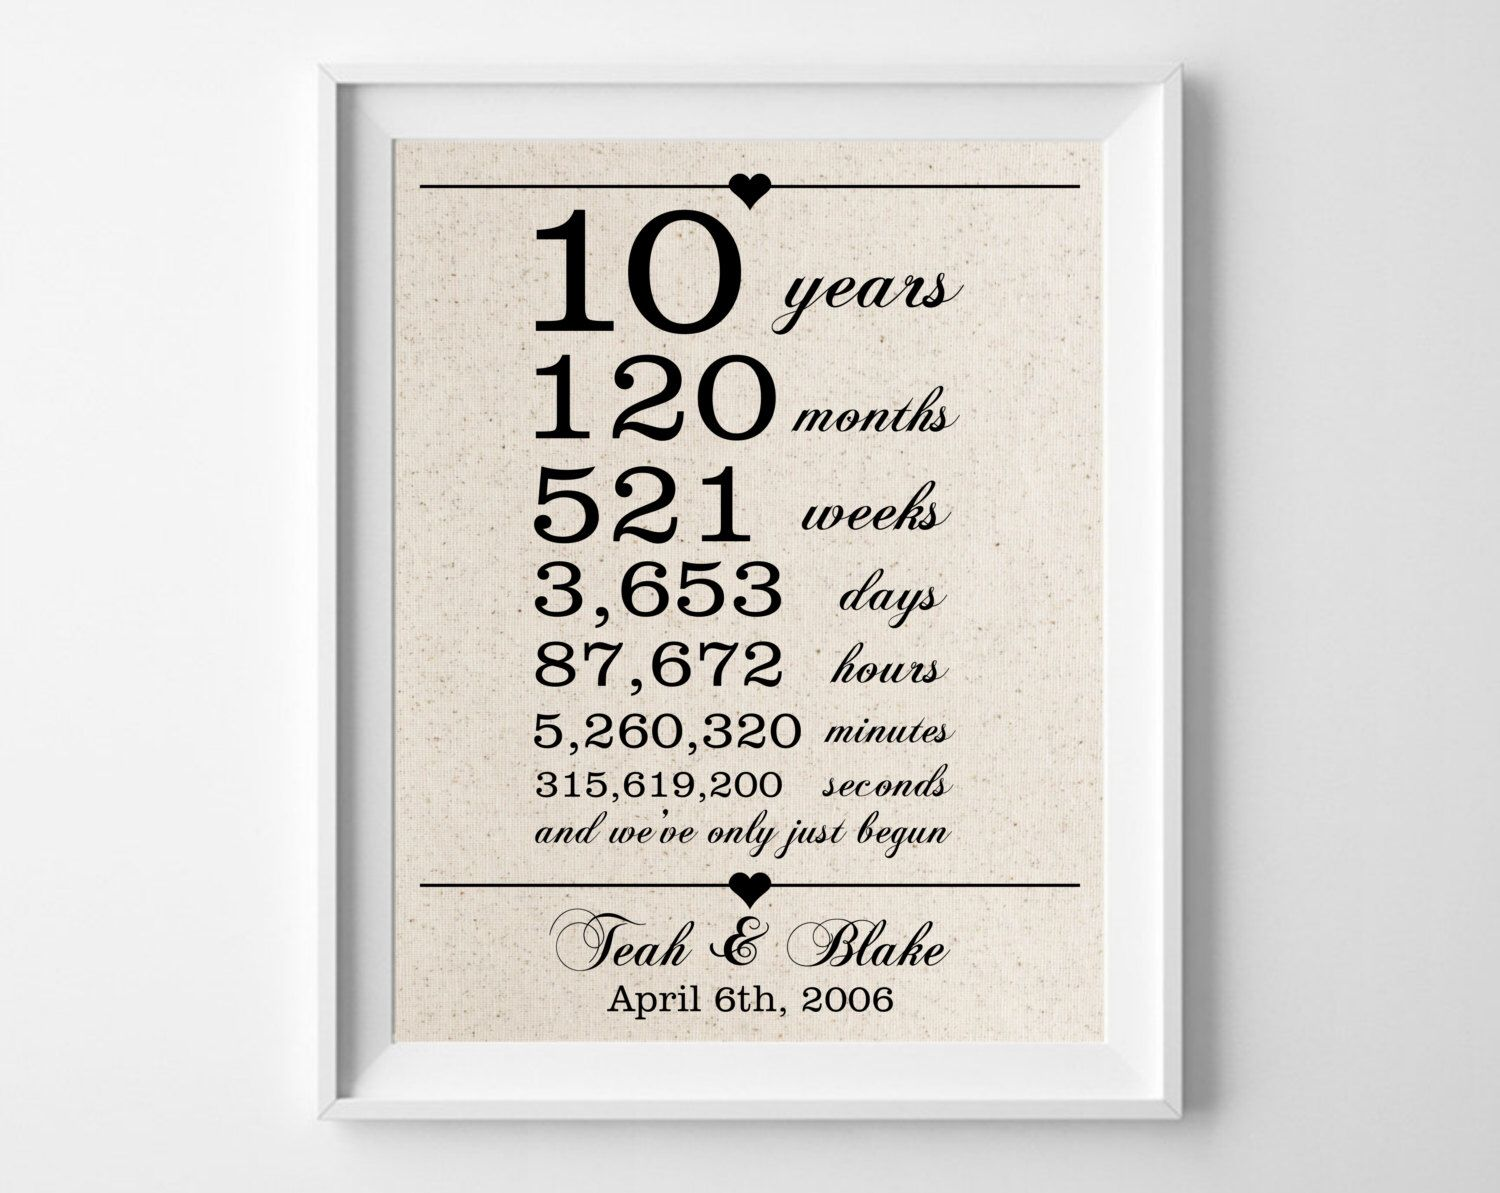 10 Years Together Cotton Gift Print 10th Anniversary Gifts Etsy Podarki Na Yubilej Podarki Muzhu Godovshina Svadby